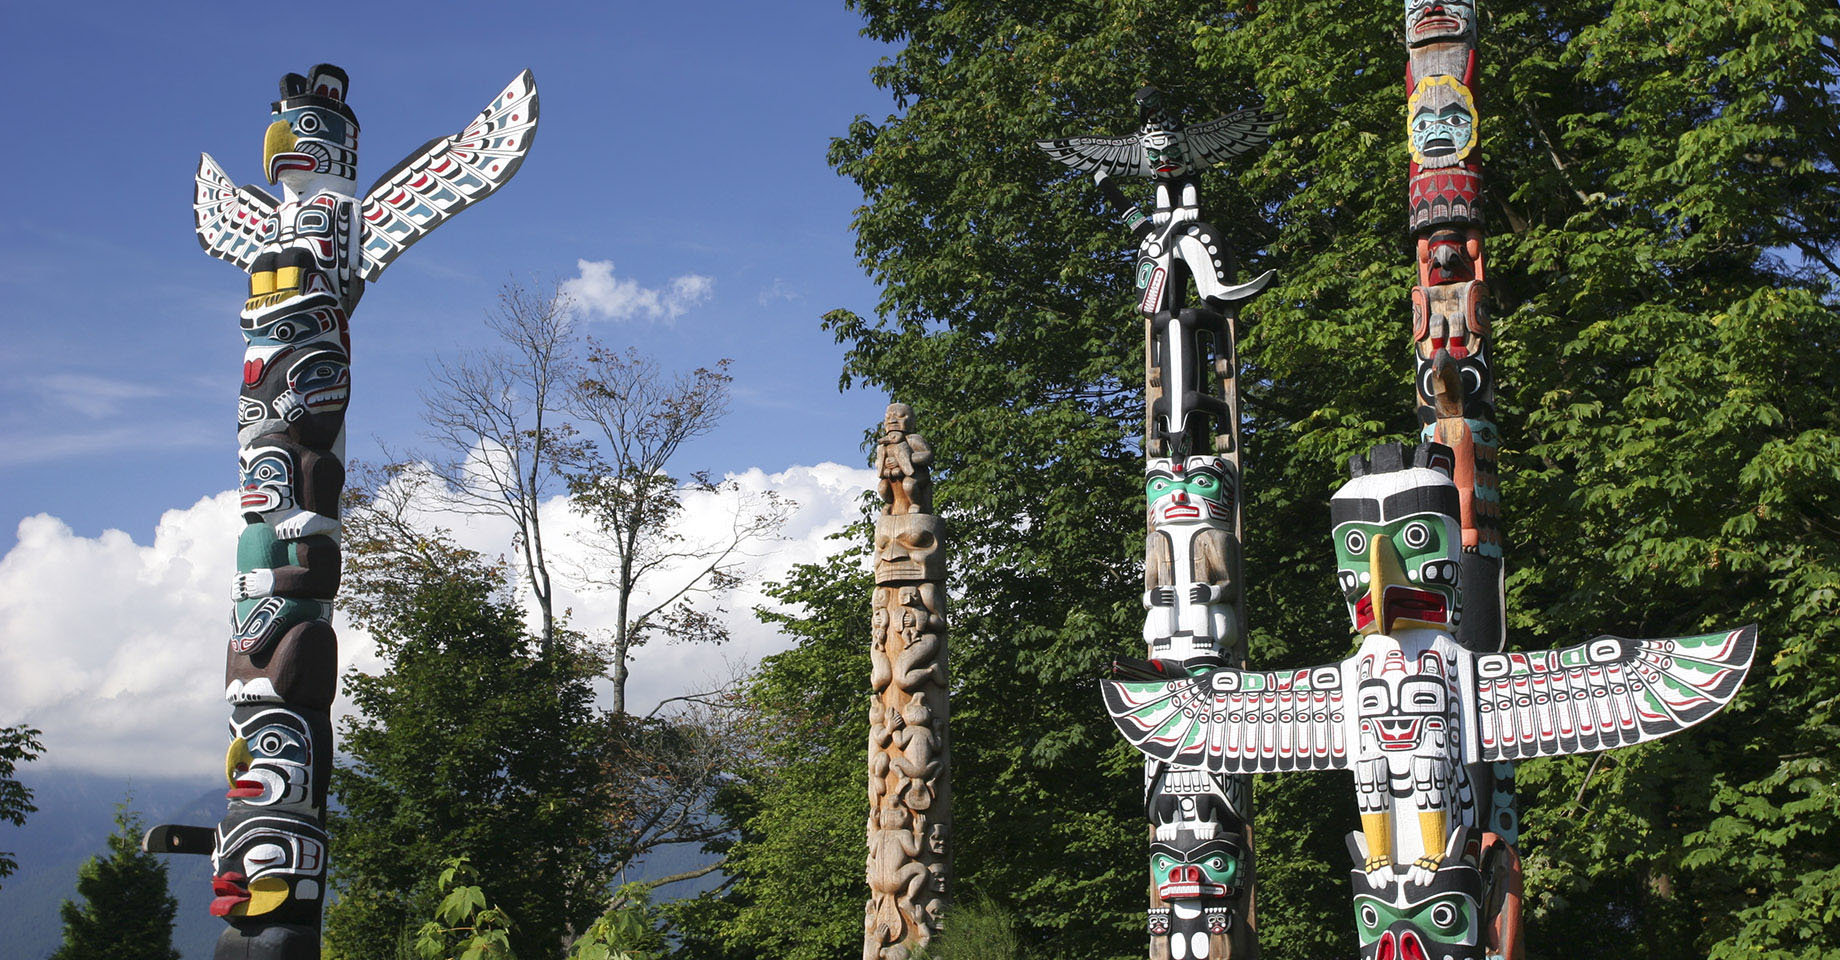 Totem Poles at Brockton Point in Stanley Park, Vancouver